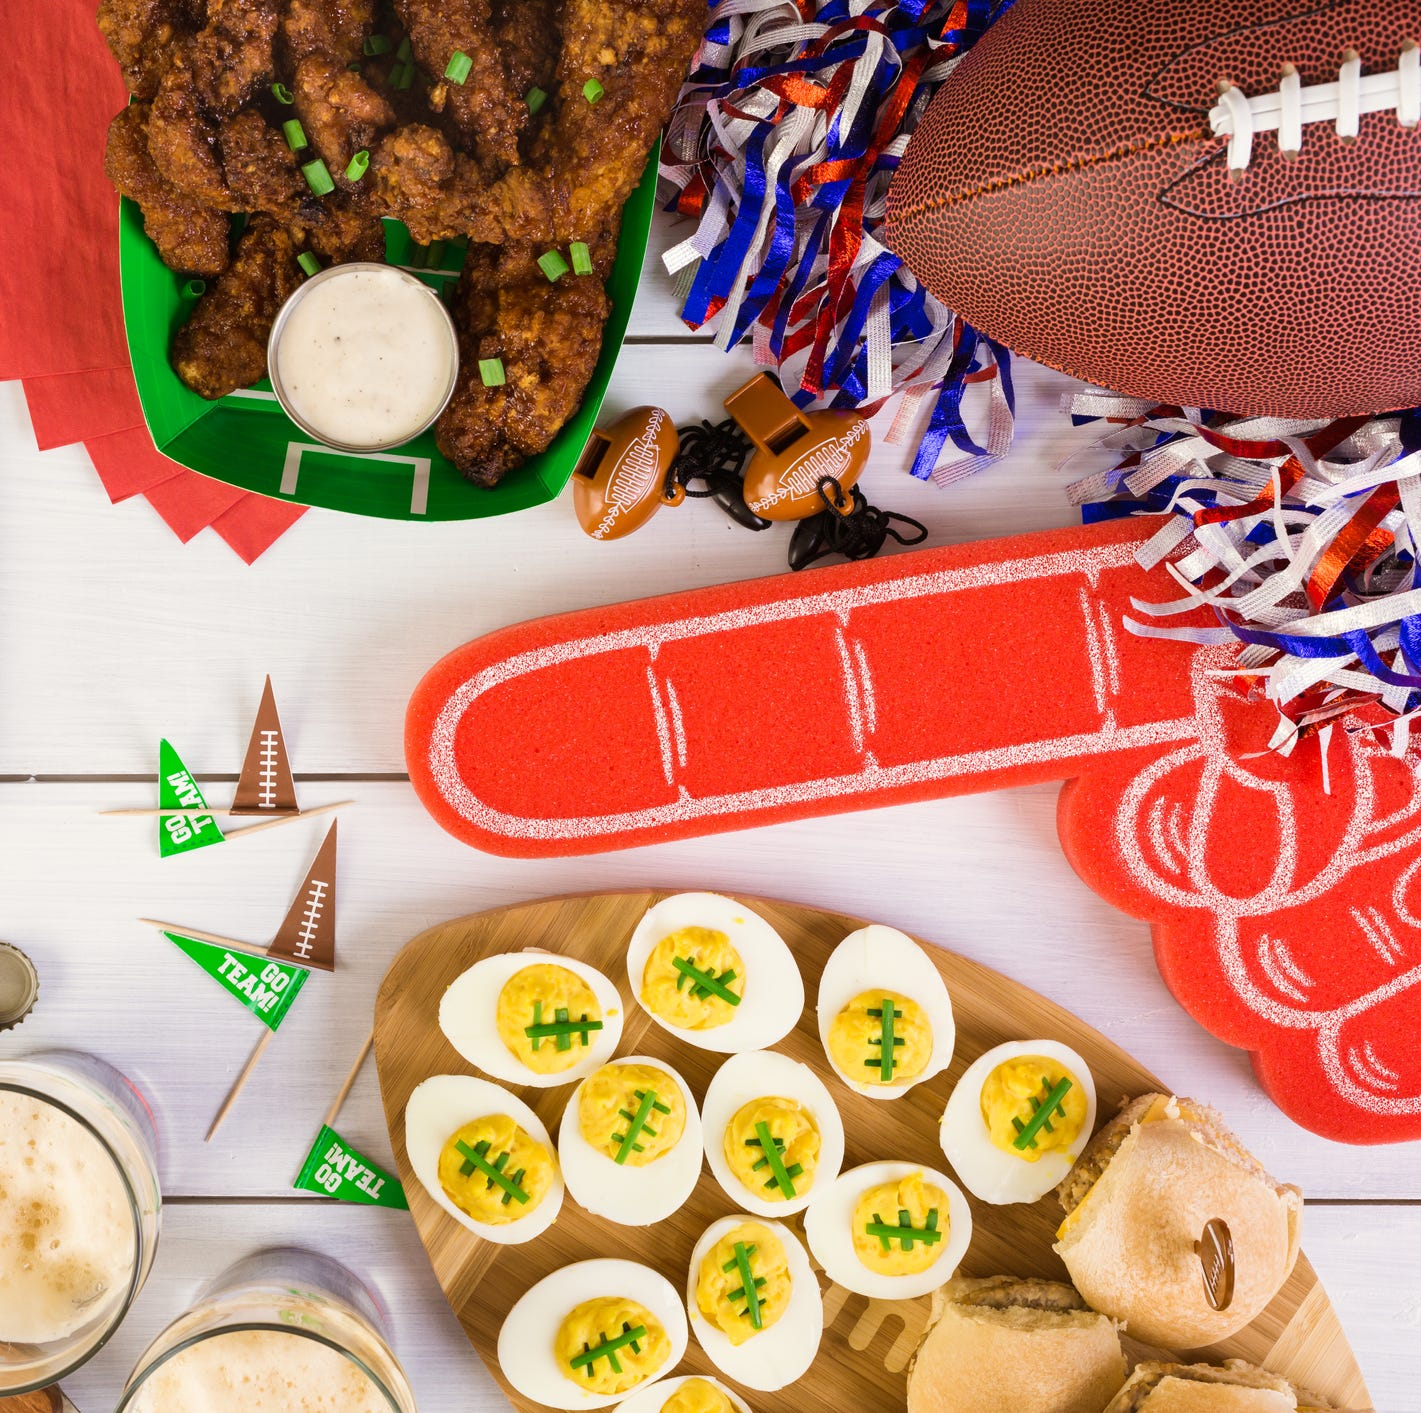 How to detox from your Super Bowl junk food binge